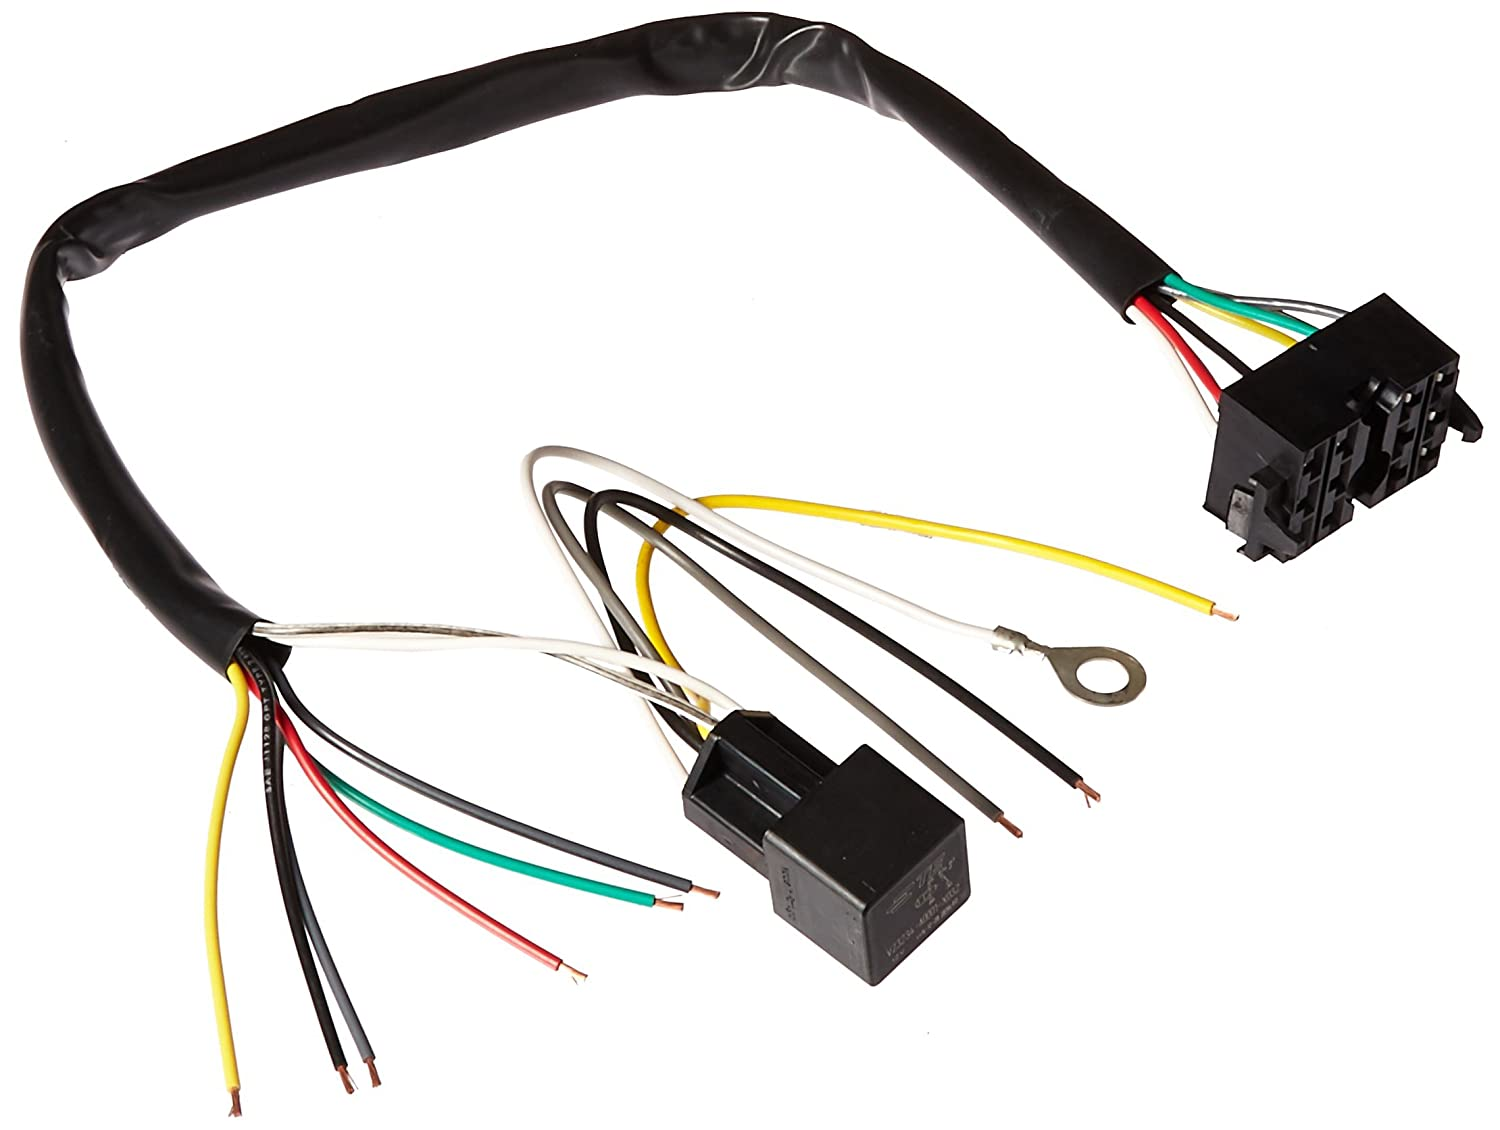 Wiring Diagram Turn Signal Switch Wiring Diagram Grote Turn Signal